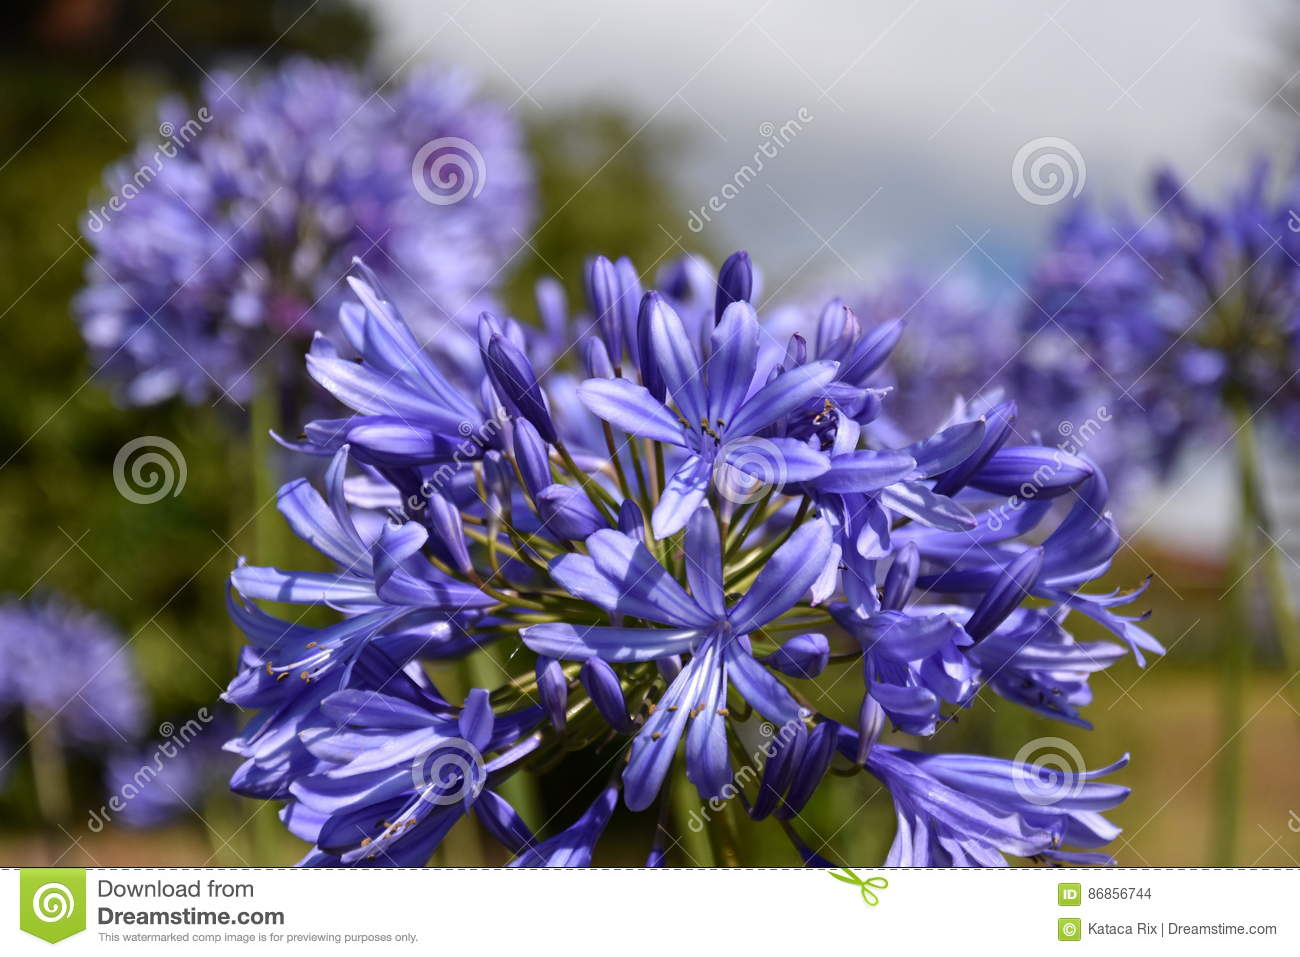 Closeup photo of lily of the nile also called african blue lily closeup photo of lily of the nile also called african blue lily flower izmirmasajfo